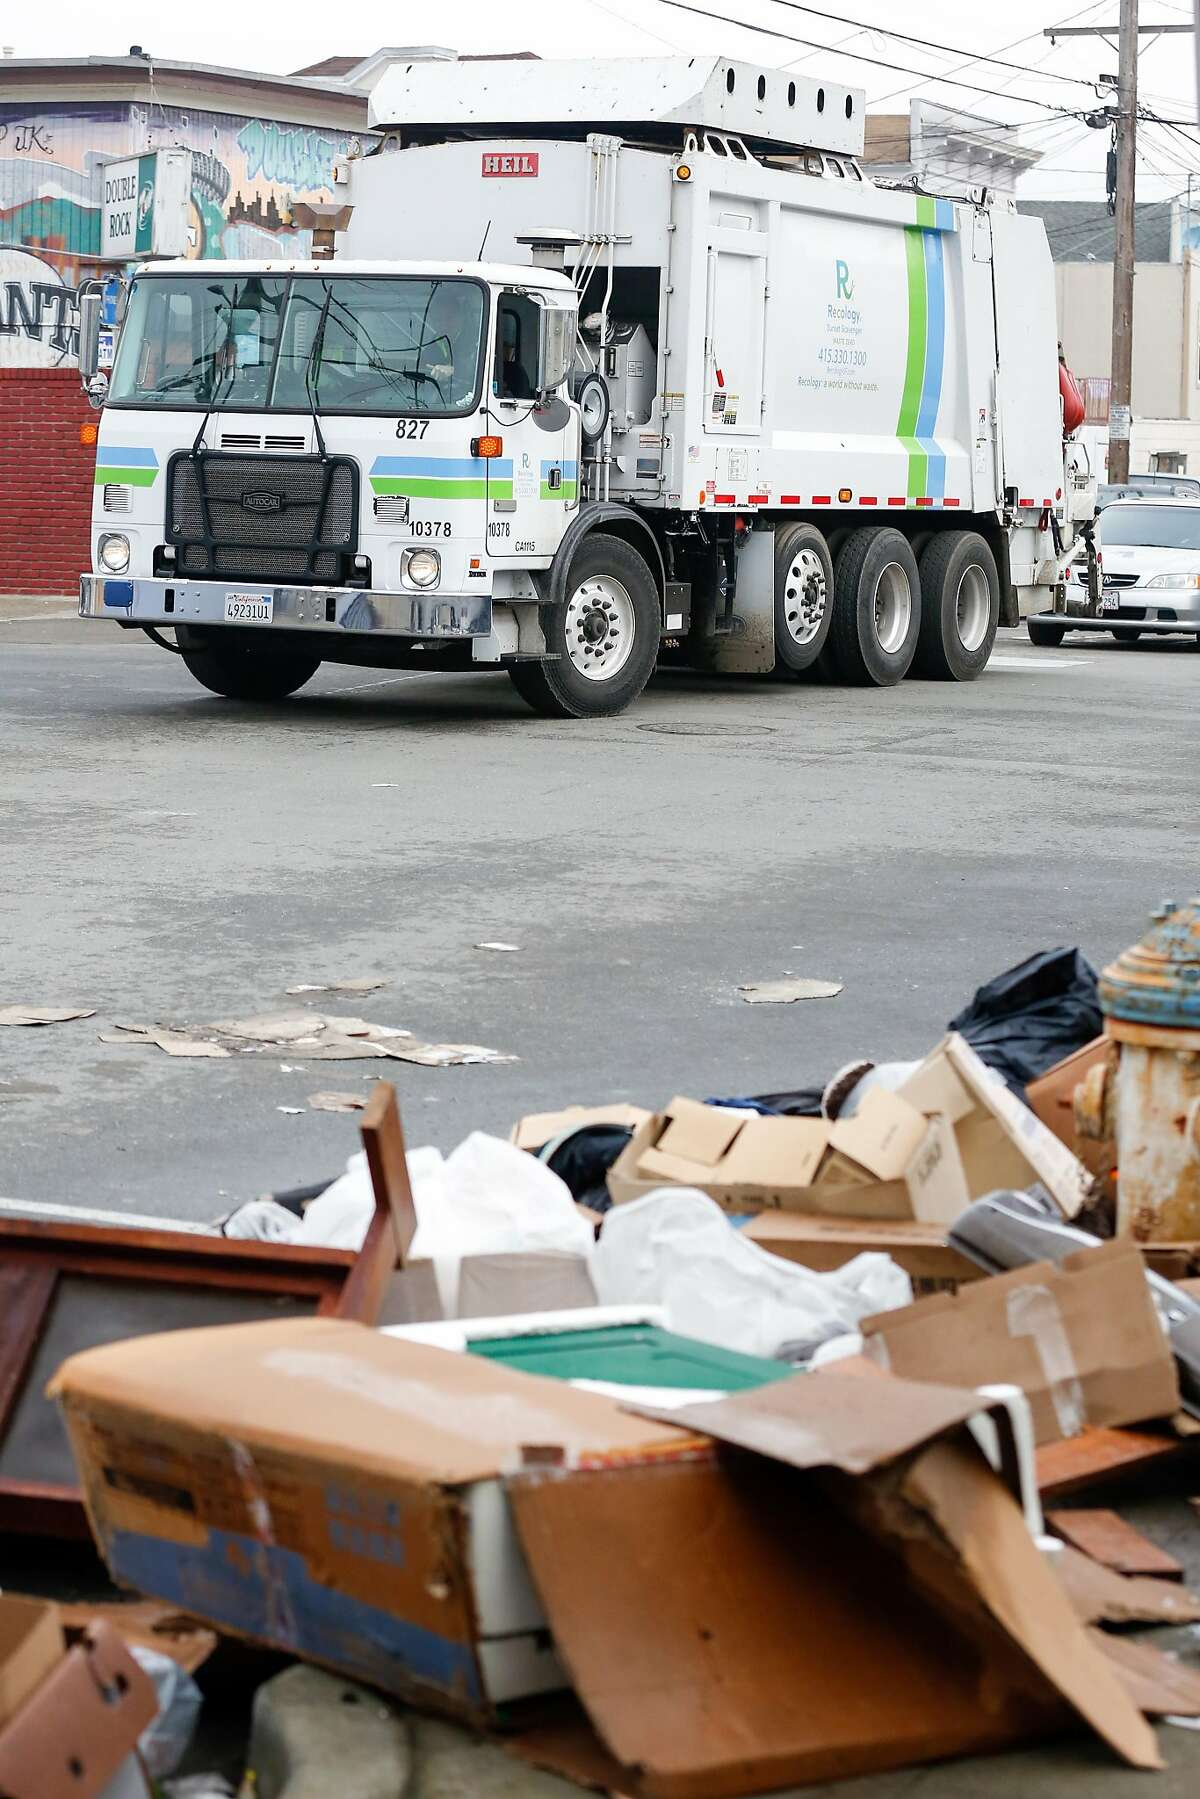 A Recology truck pulls up to a pile of garbage in the Bayview District on Thursday, January 10, 2019 in San Francisco, Calif.